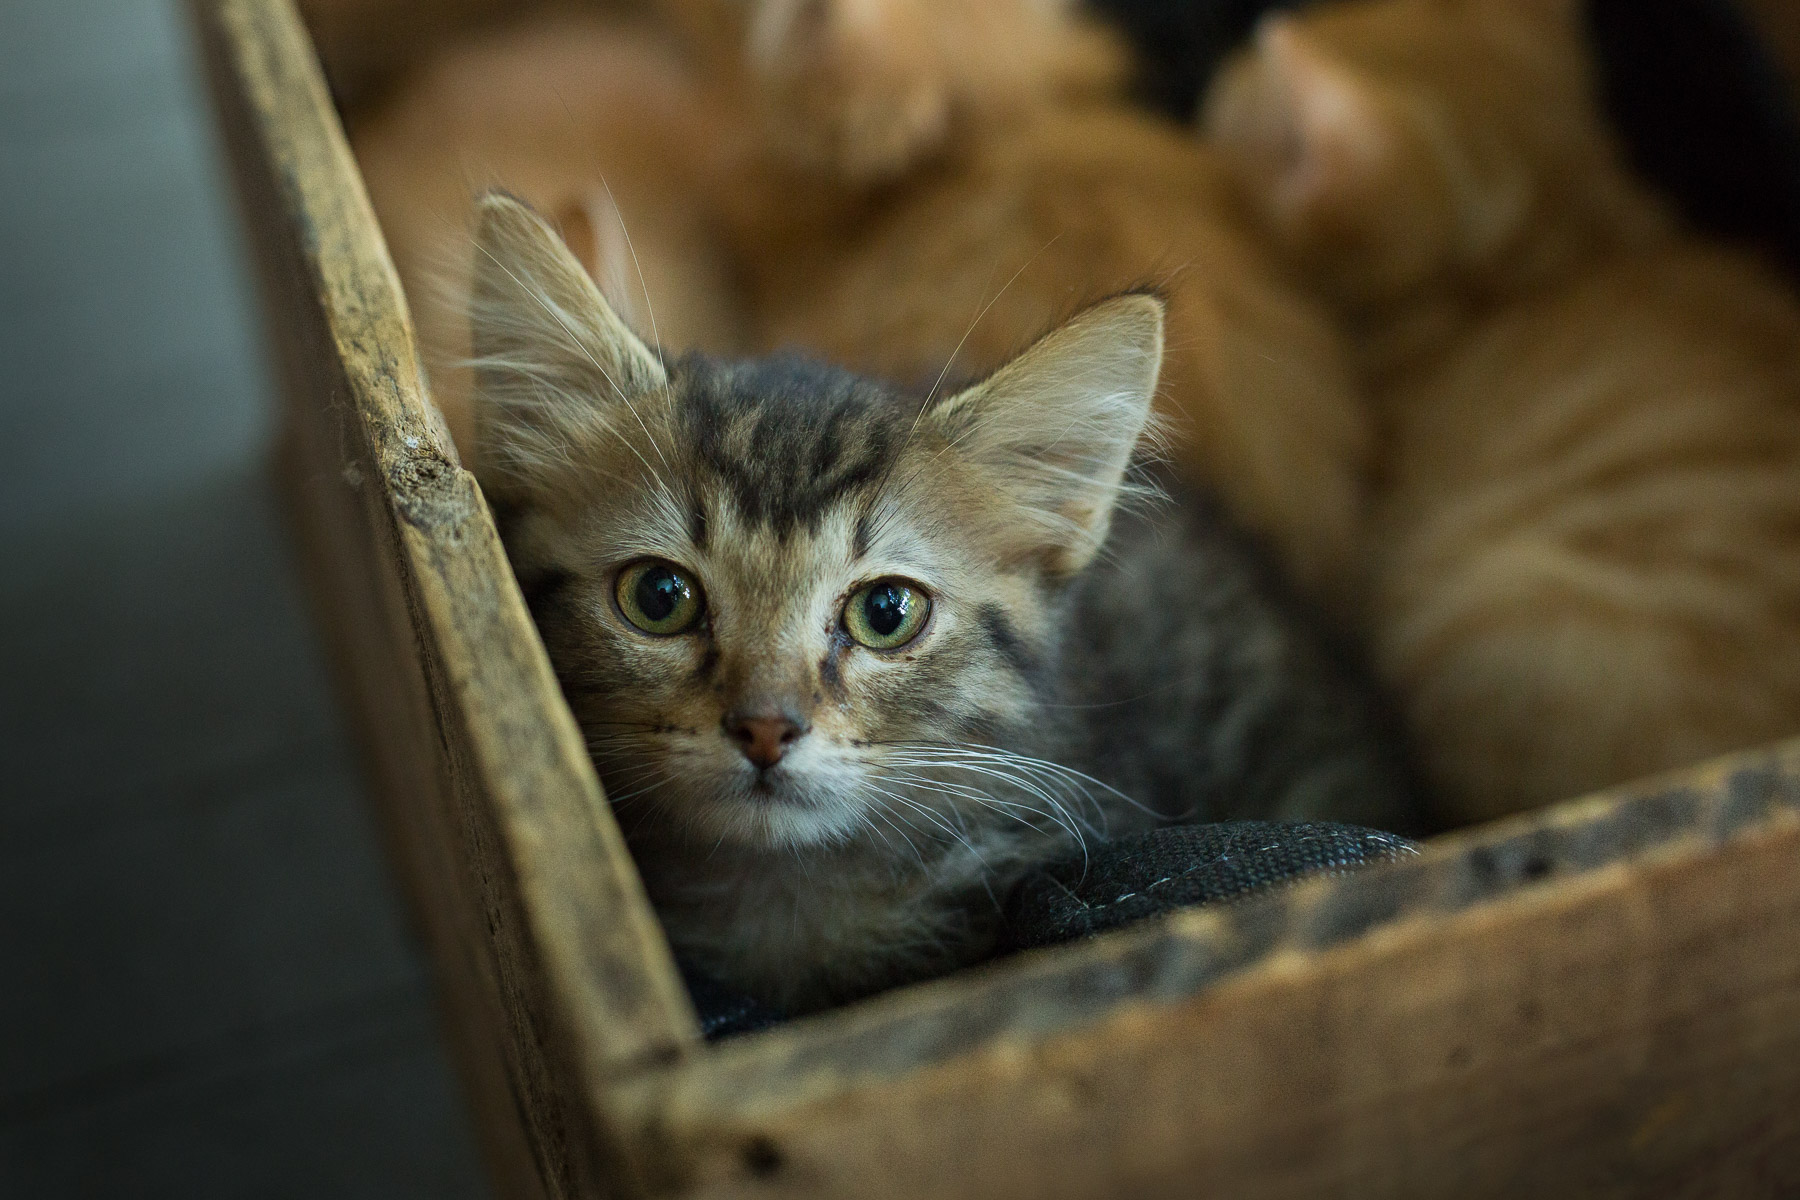 box-with-cat-litter-baby-cats-animal-photographer-cat-looking-camera.jpg